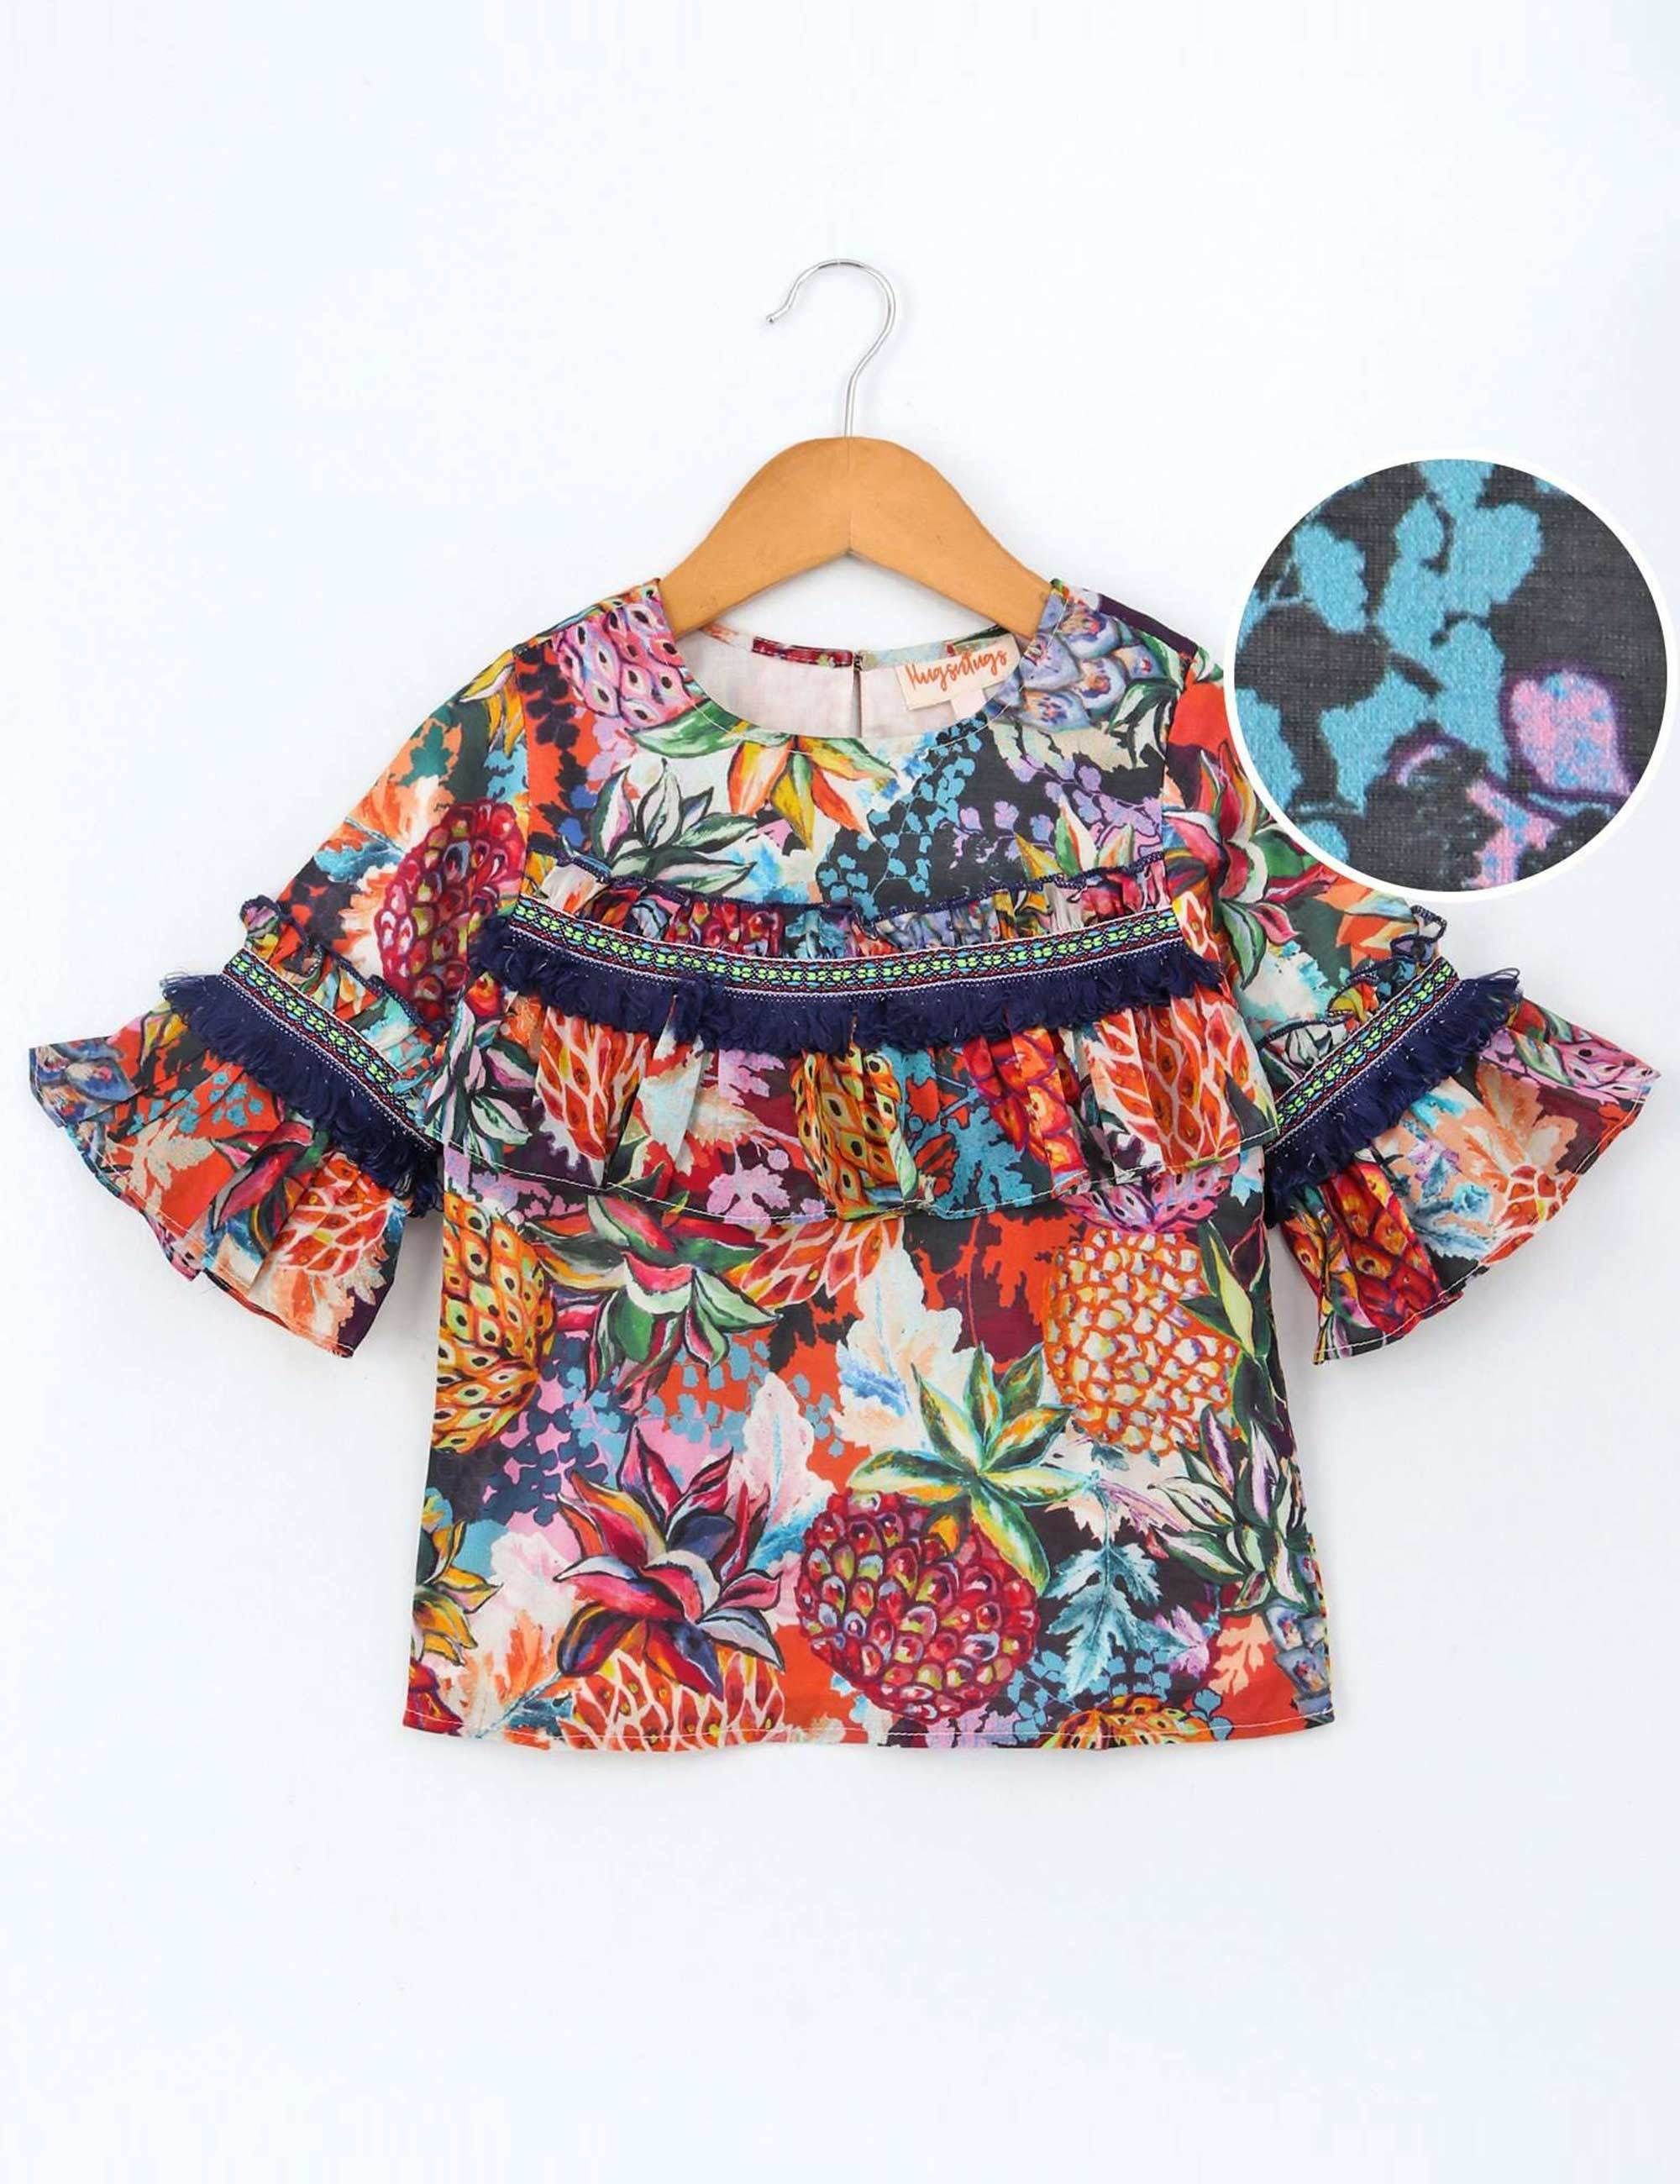 39eb4a3459 Buy Pineapple Print Half Sleeves Top for Girls at best Price - Mini ...